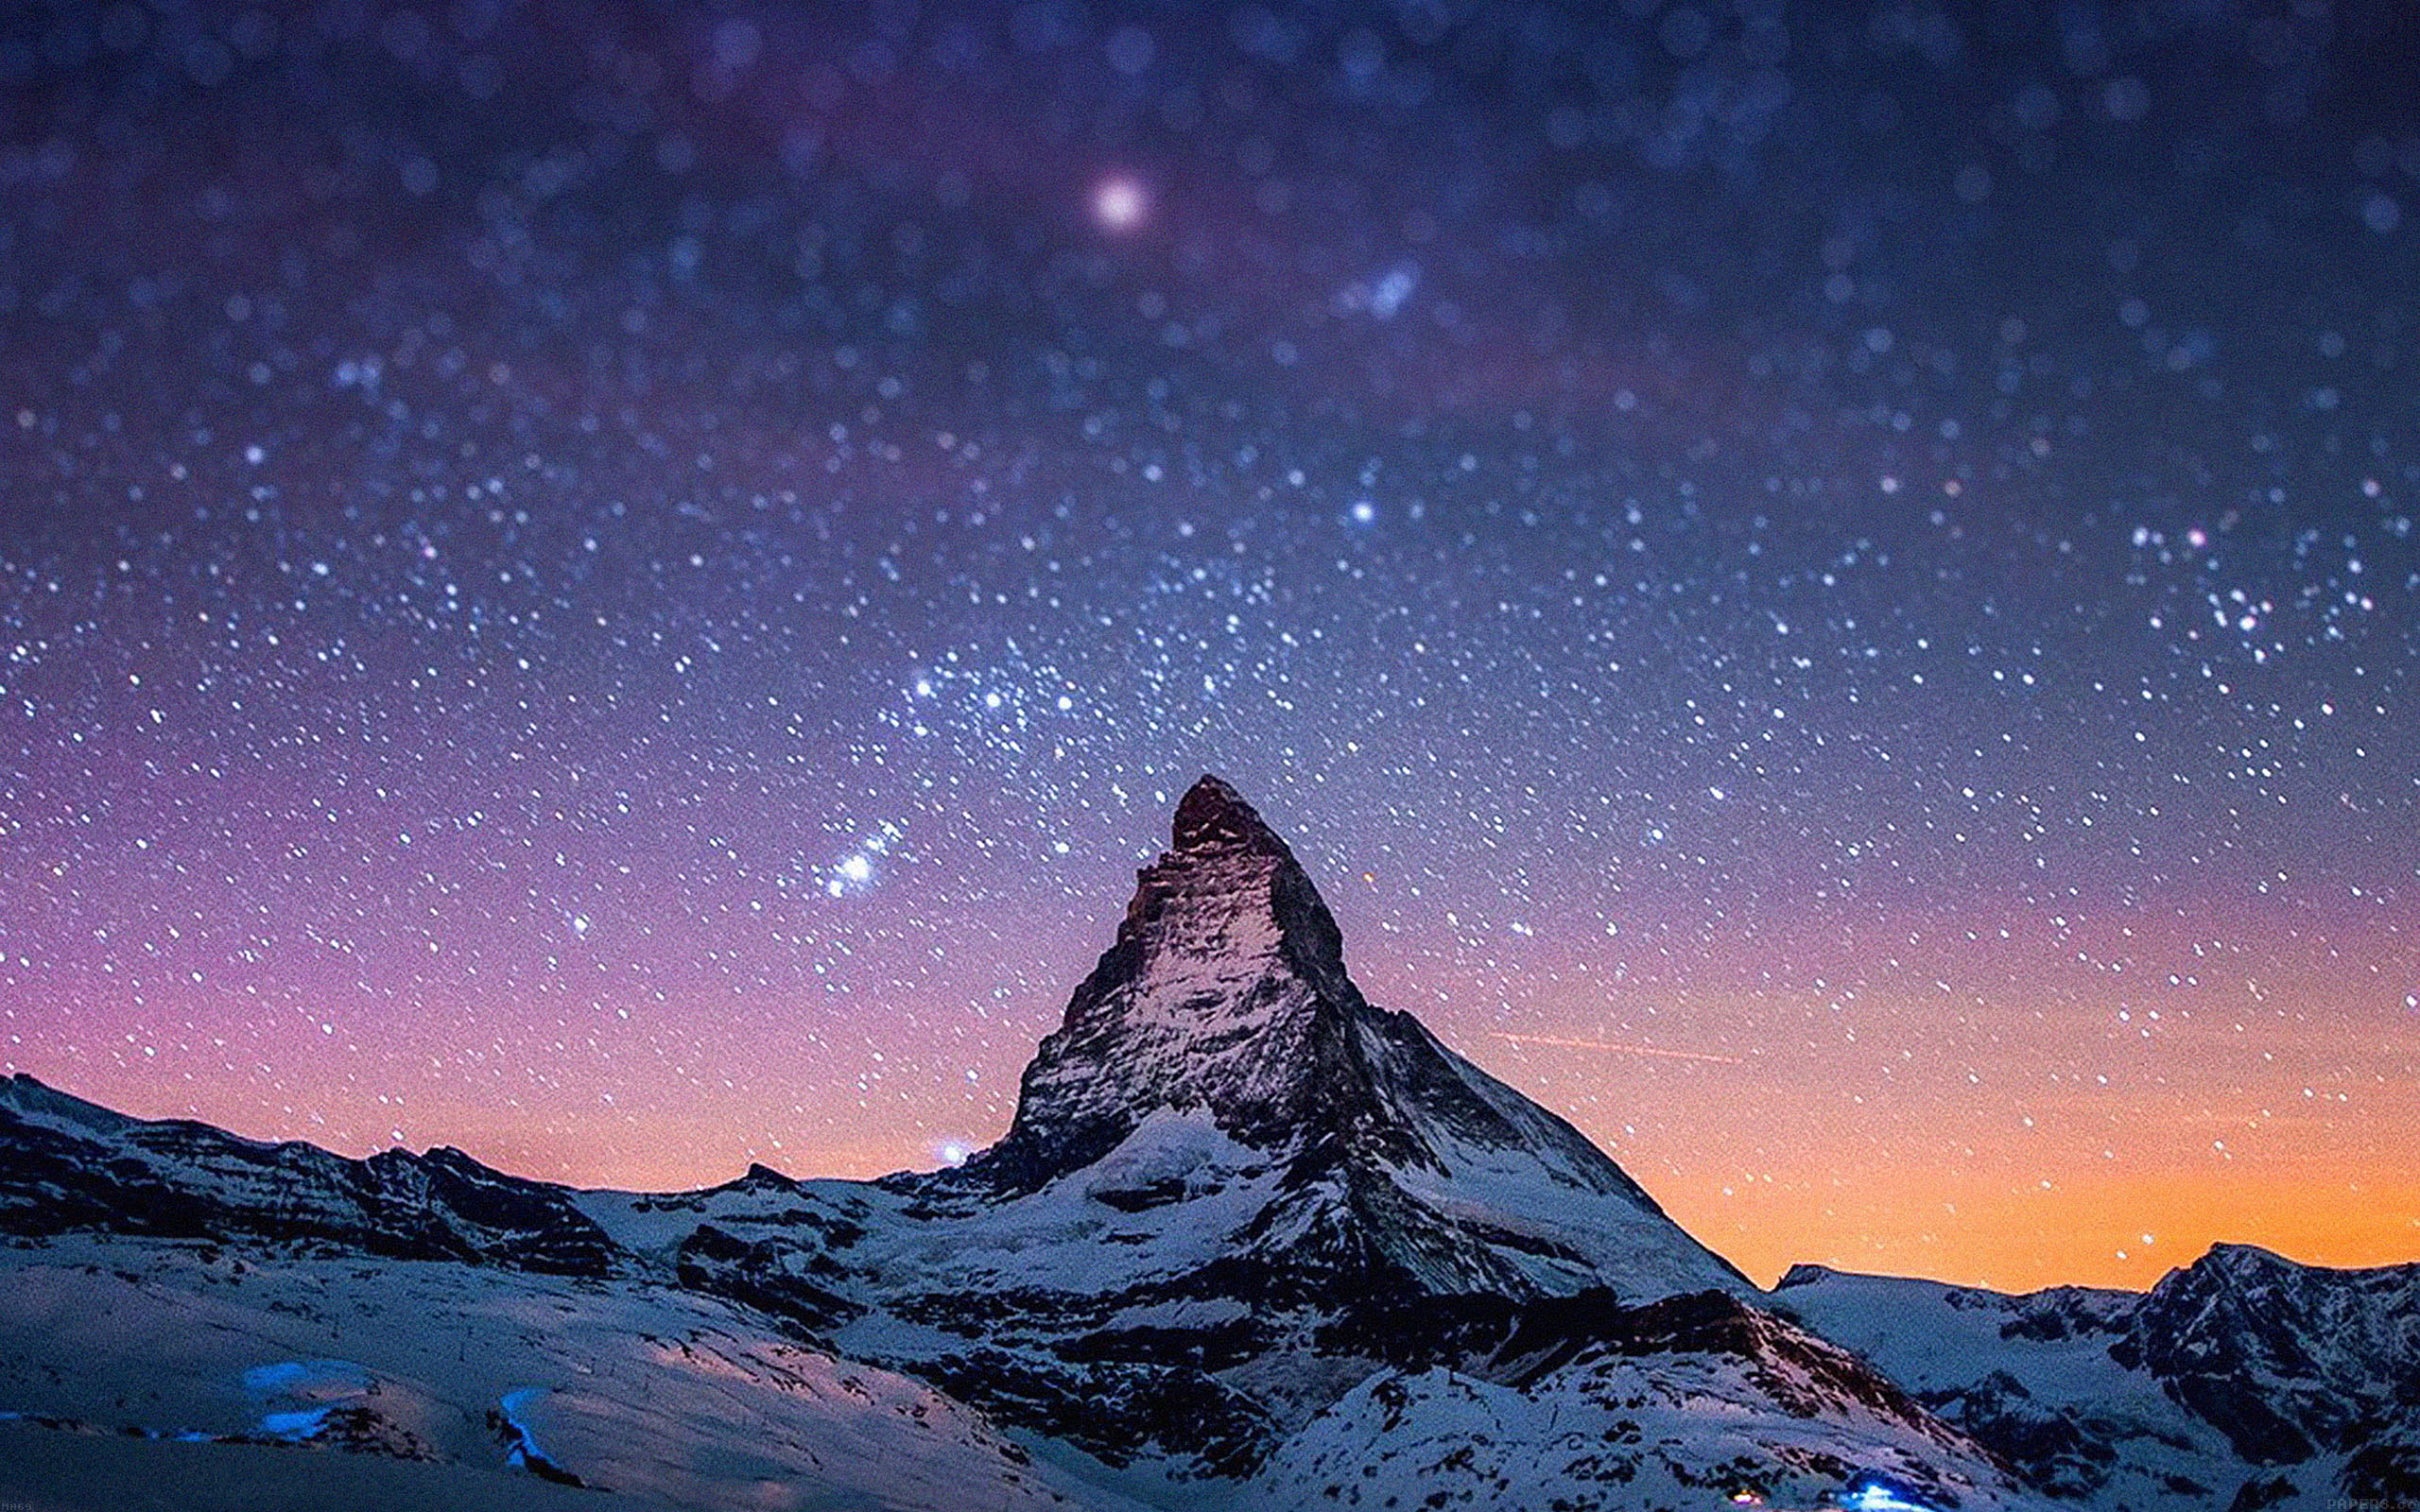 Best 3d Droid Wallpaper Ma69 Night Stars Over Moutain Nature Papers Co